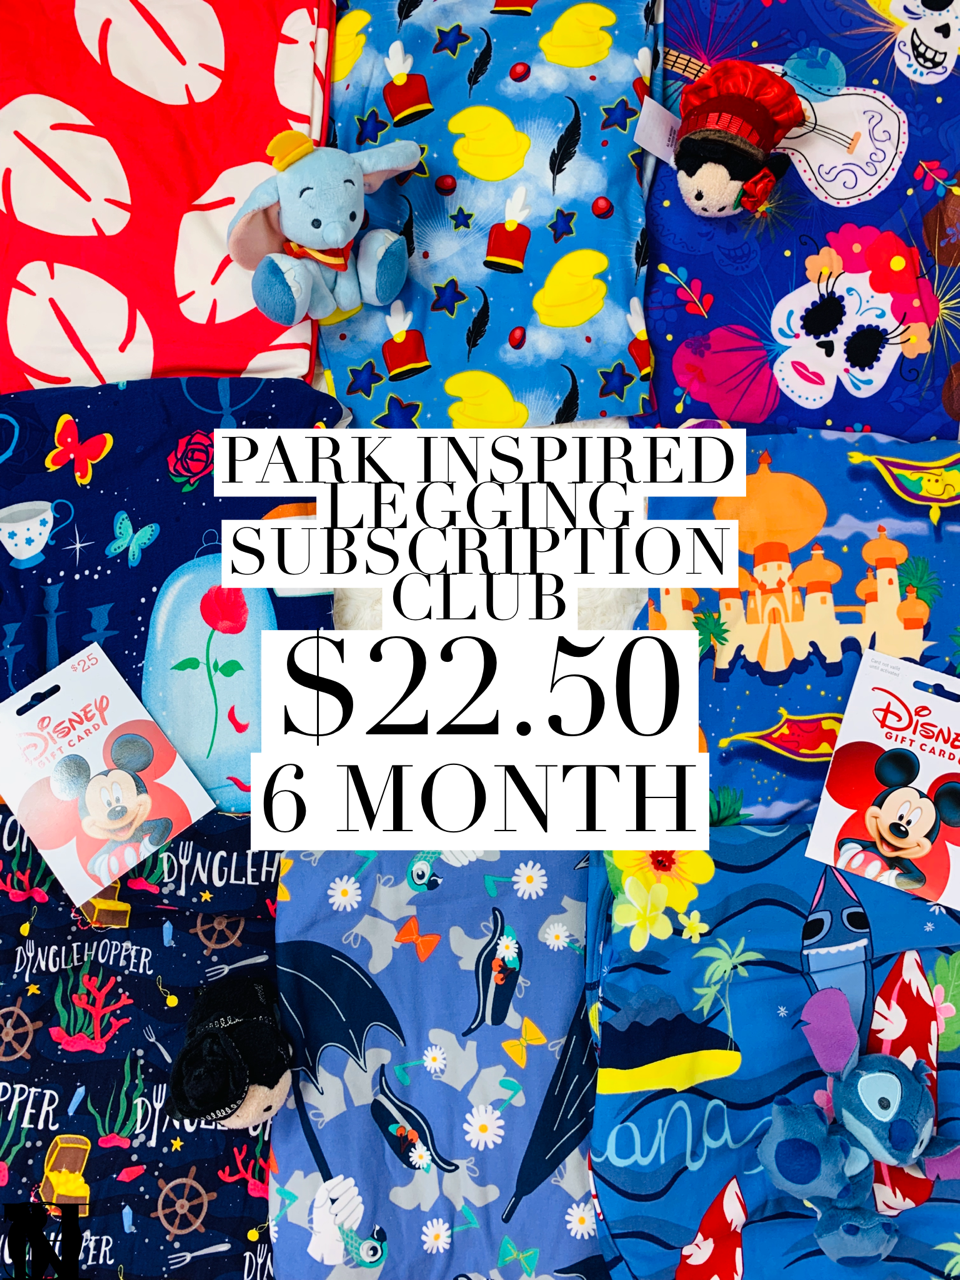 Park Inspired Leggings Subscription Club - 6 Month Subscription